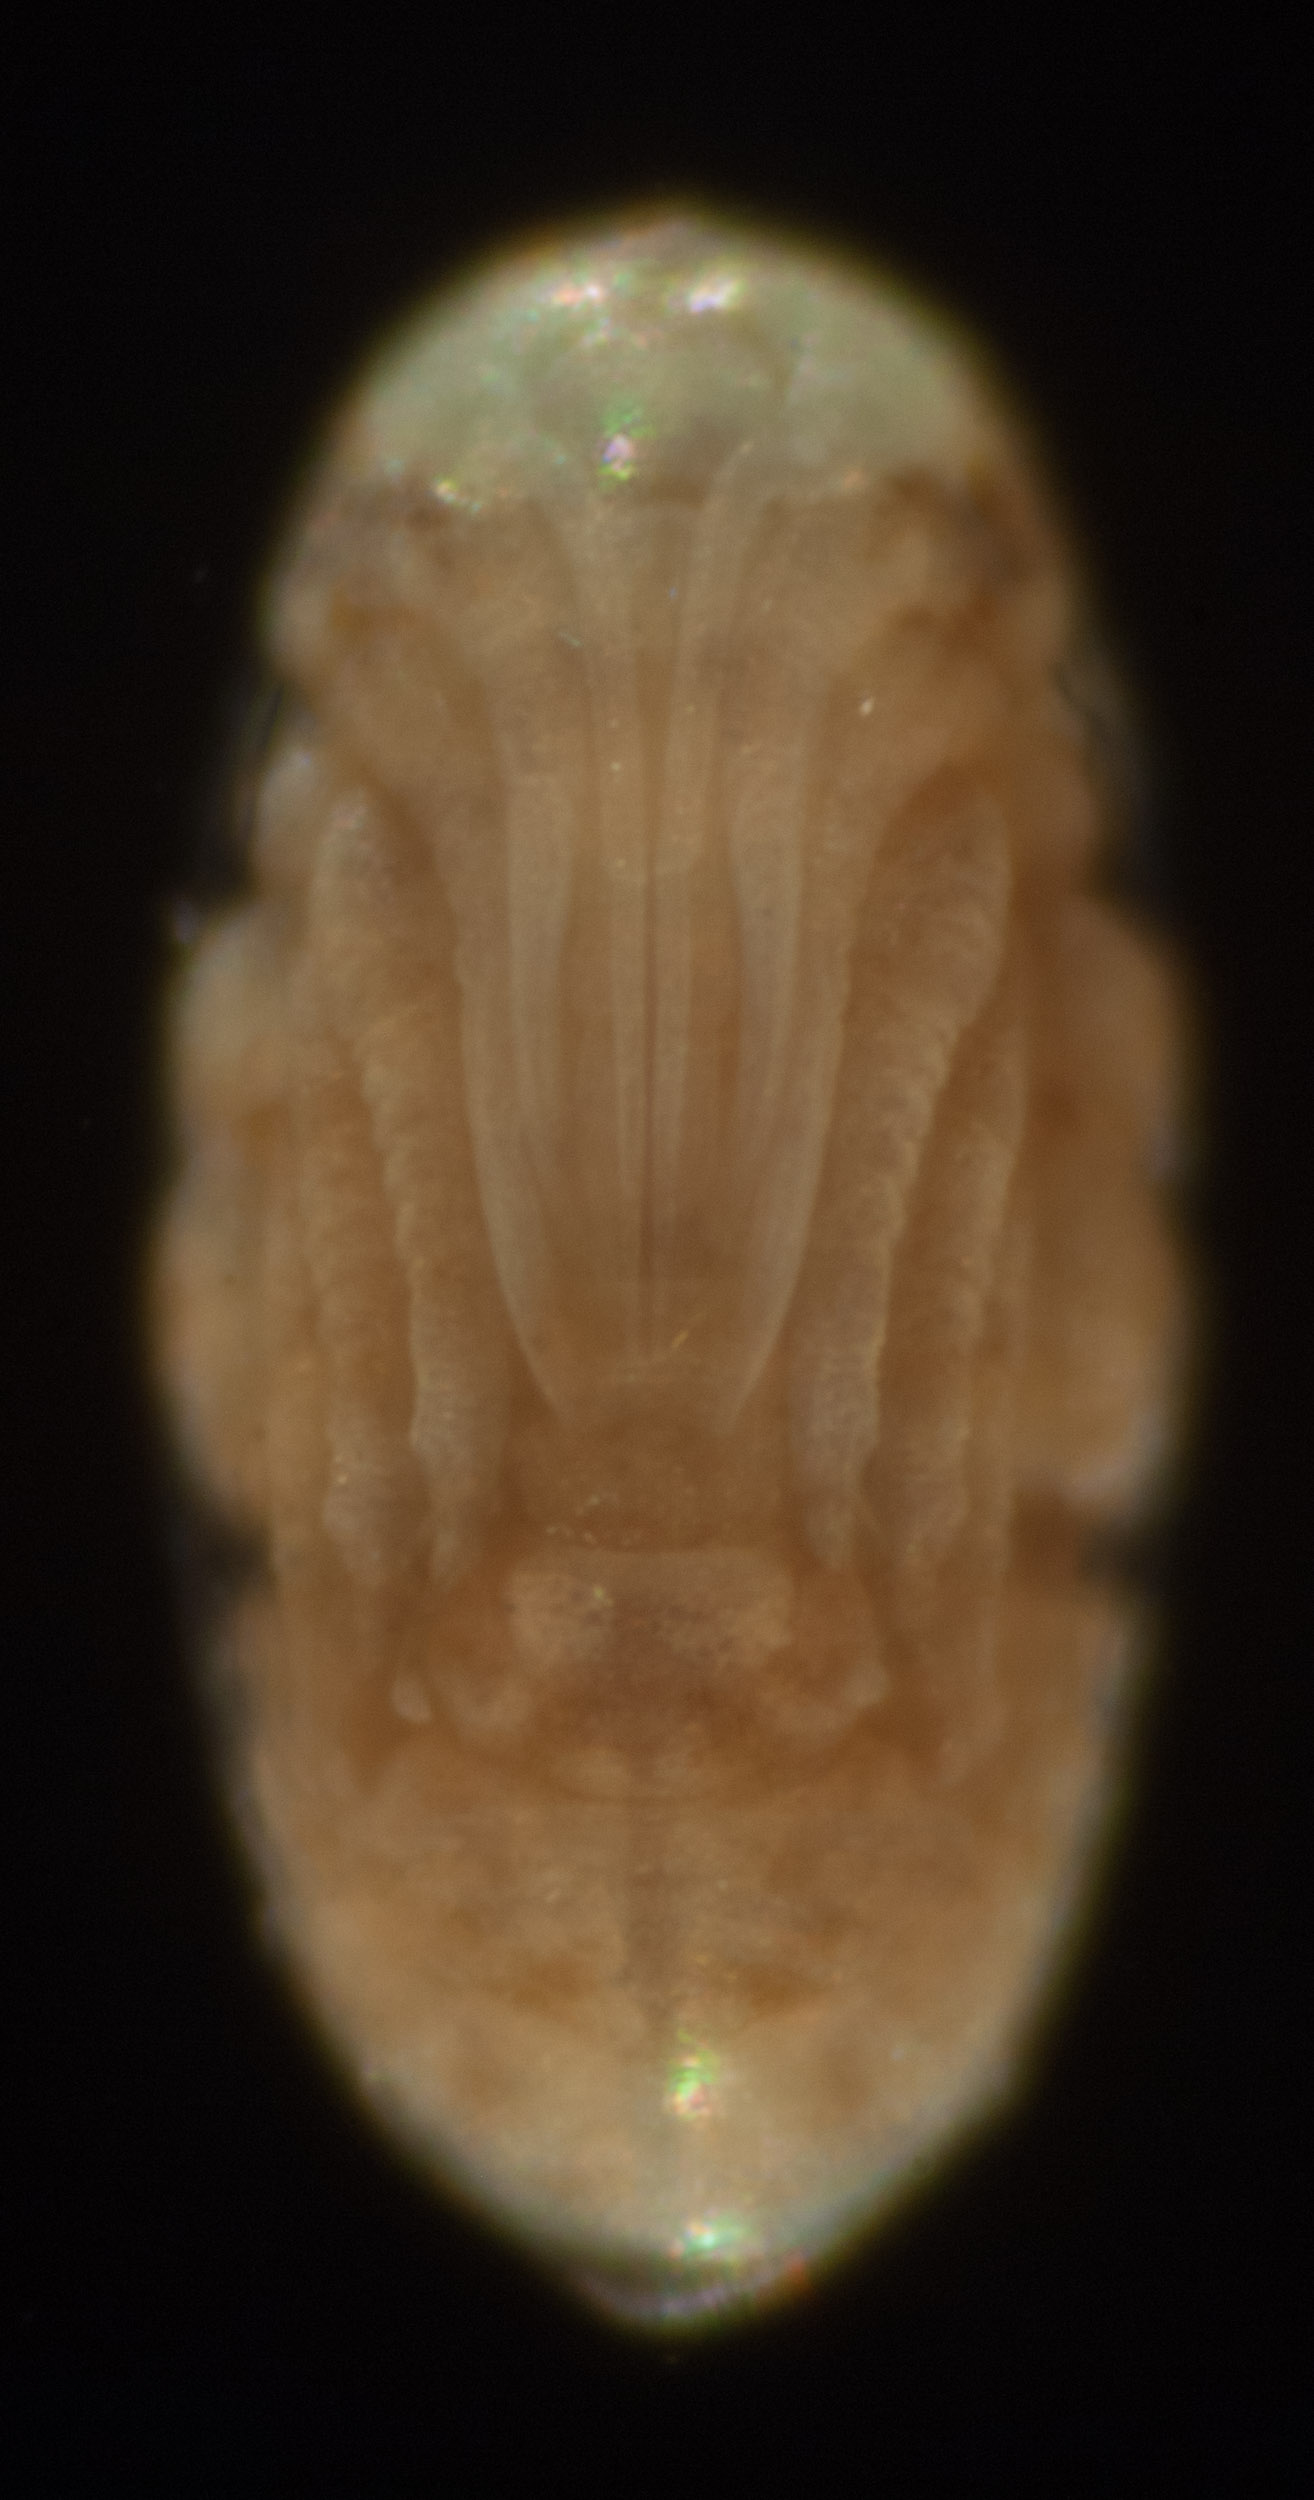 A further increase in length of the antennae, mouthparts and legs.The embryo is not far off hatching. Such a pretty thing!